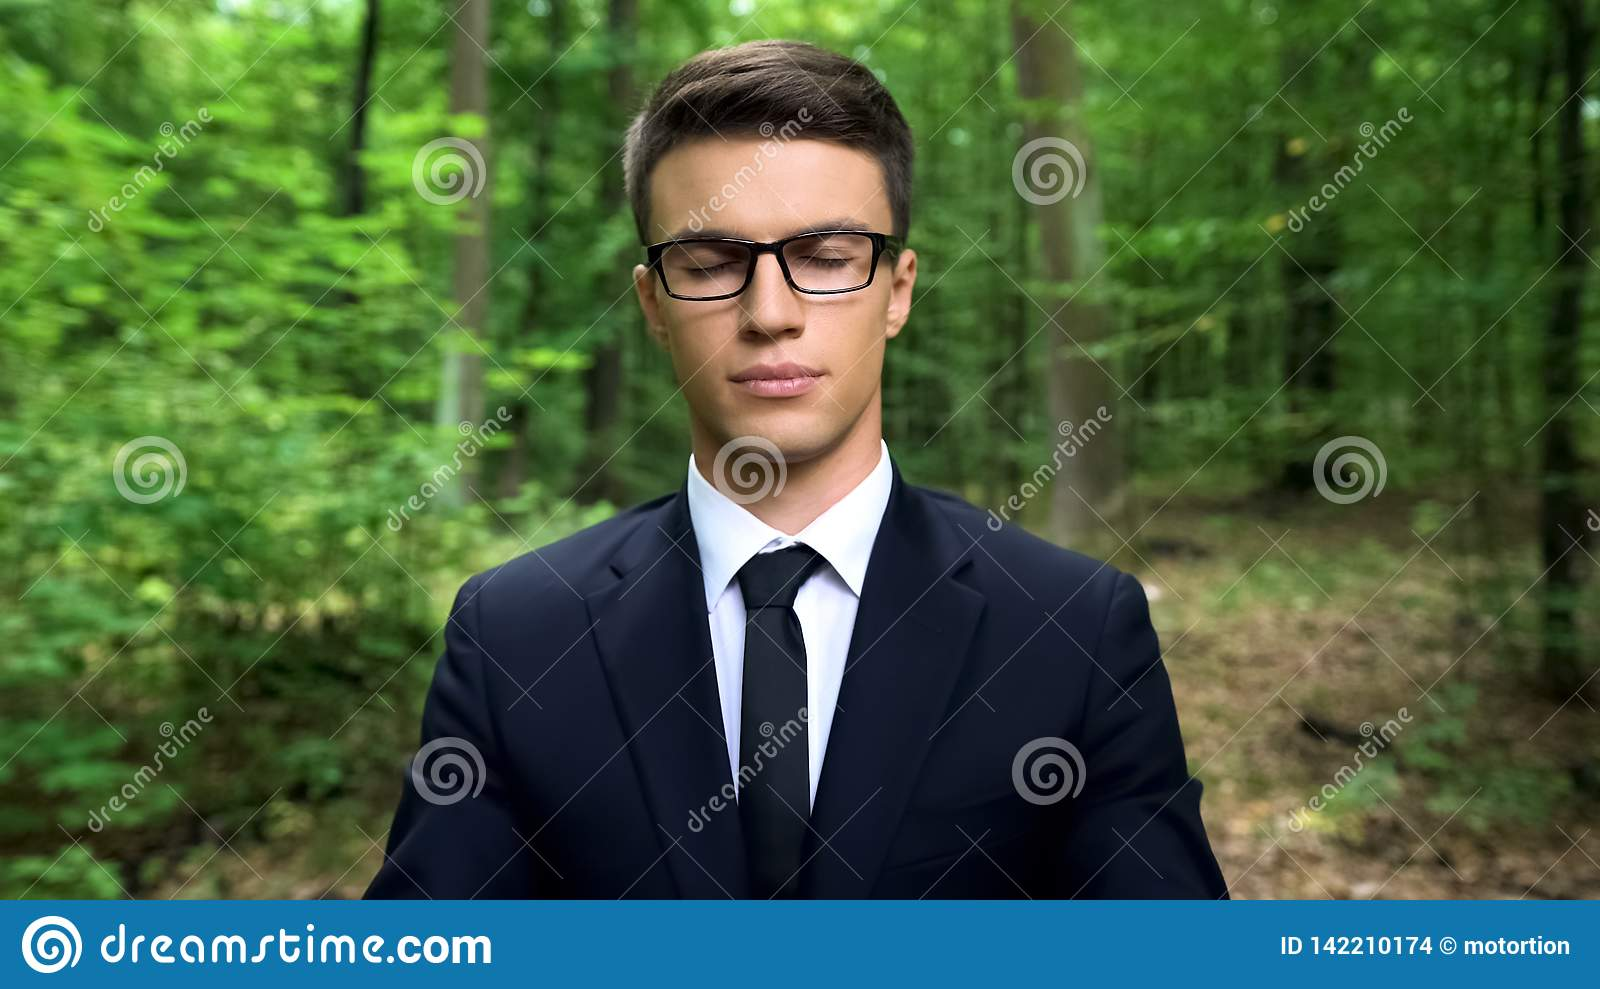 Business person feeling inner harmony in forest, finding body and mind balance